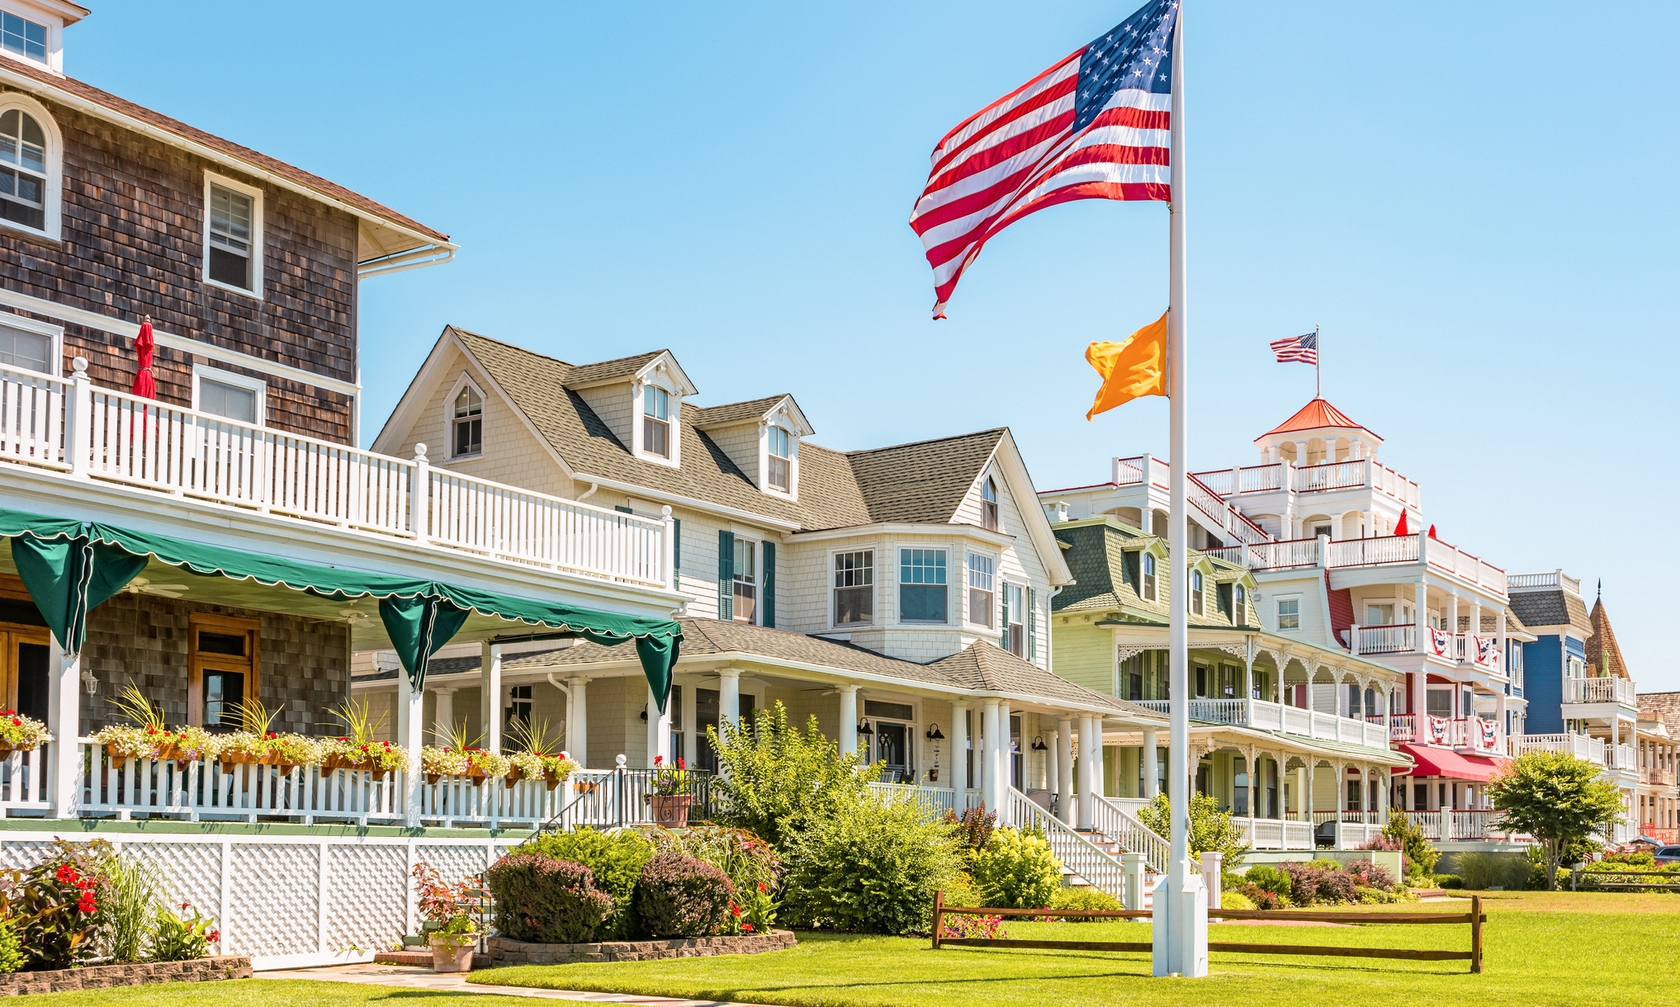 Vacation rental beach houses in Cape May